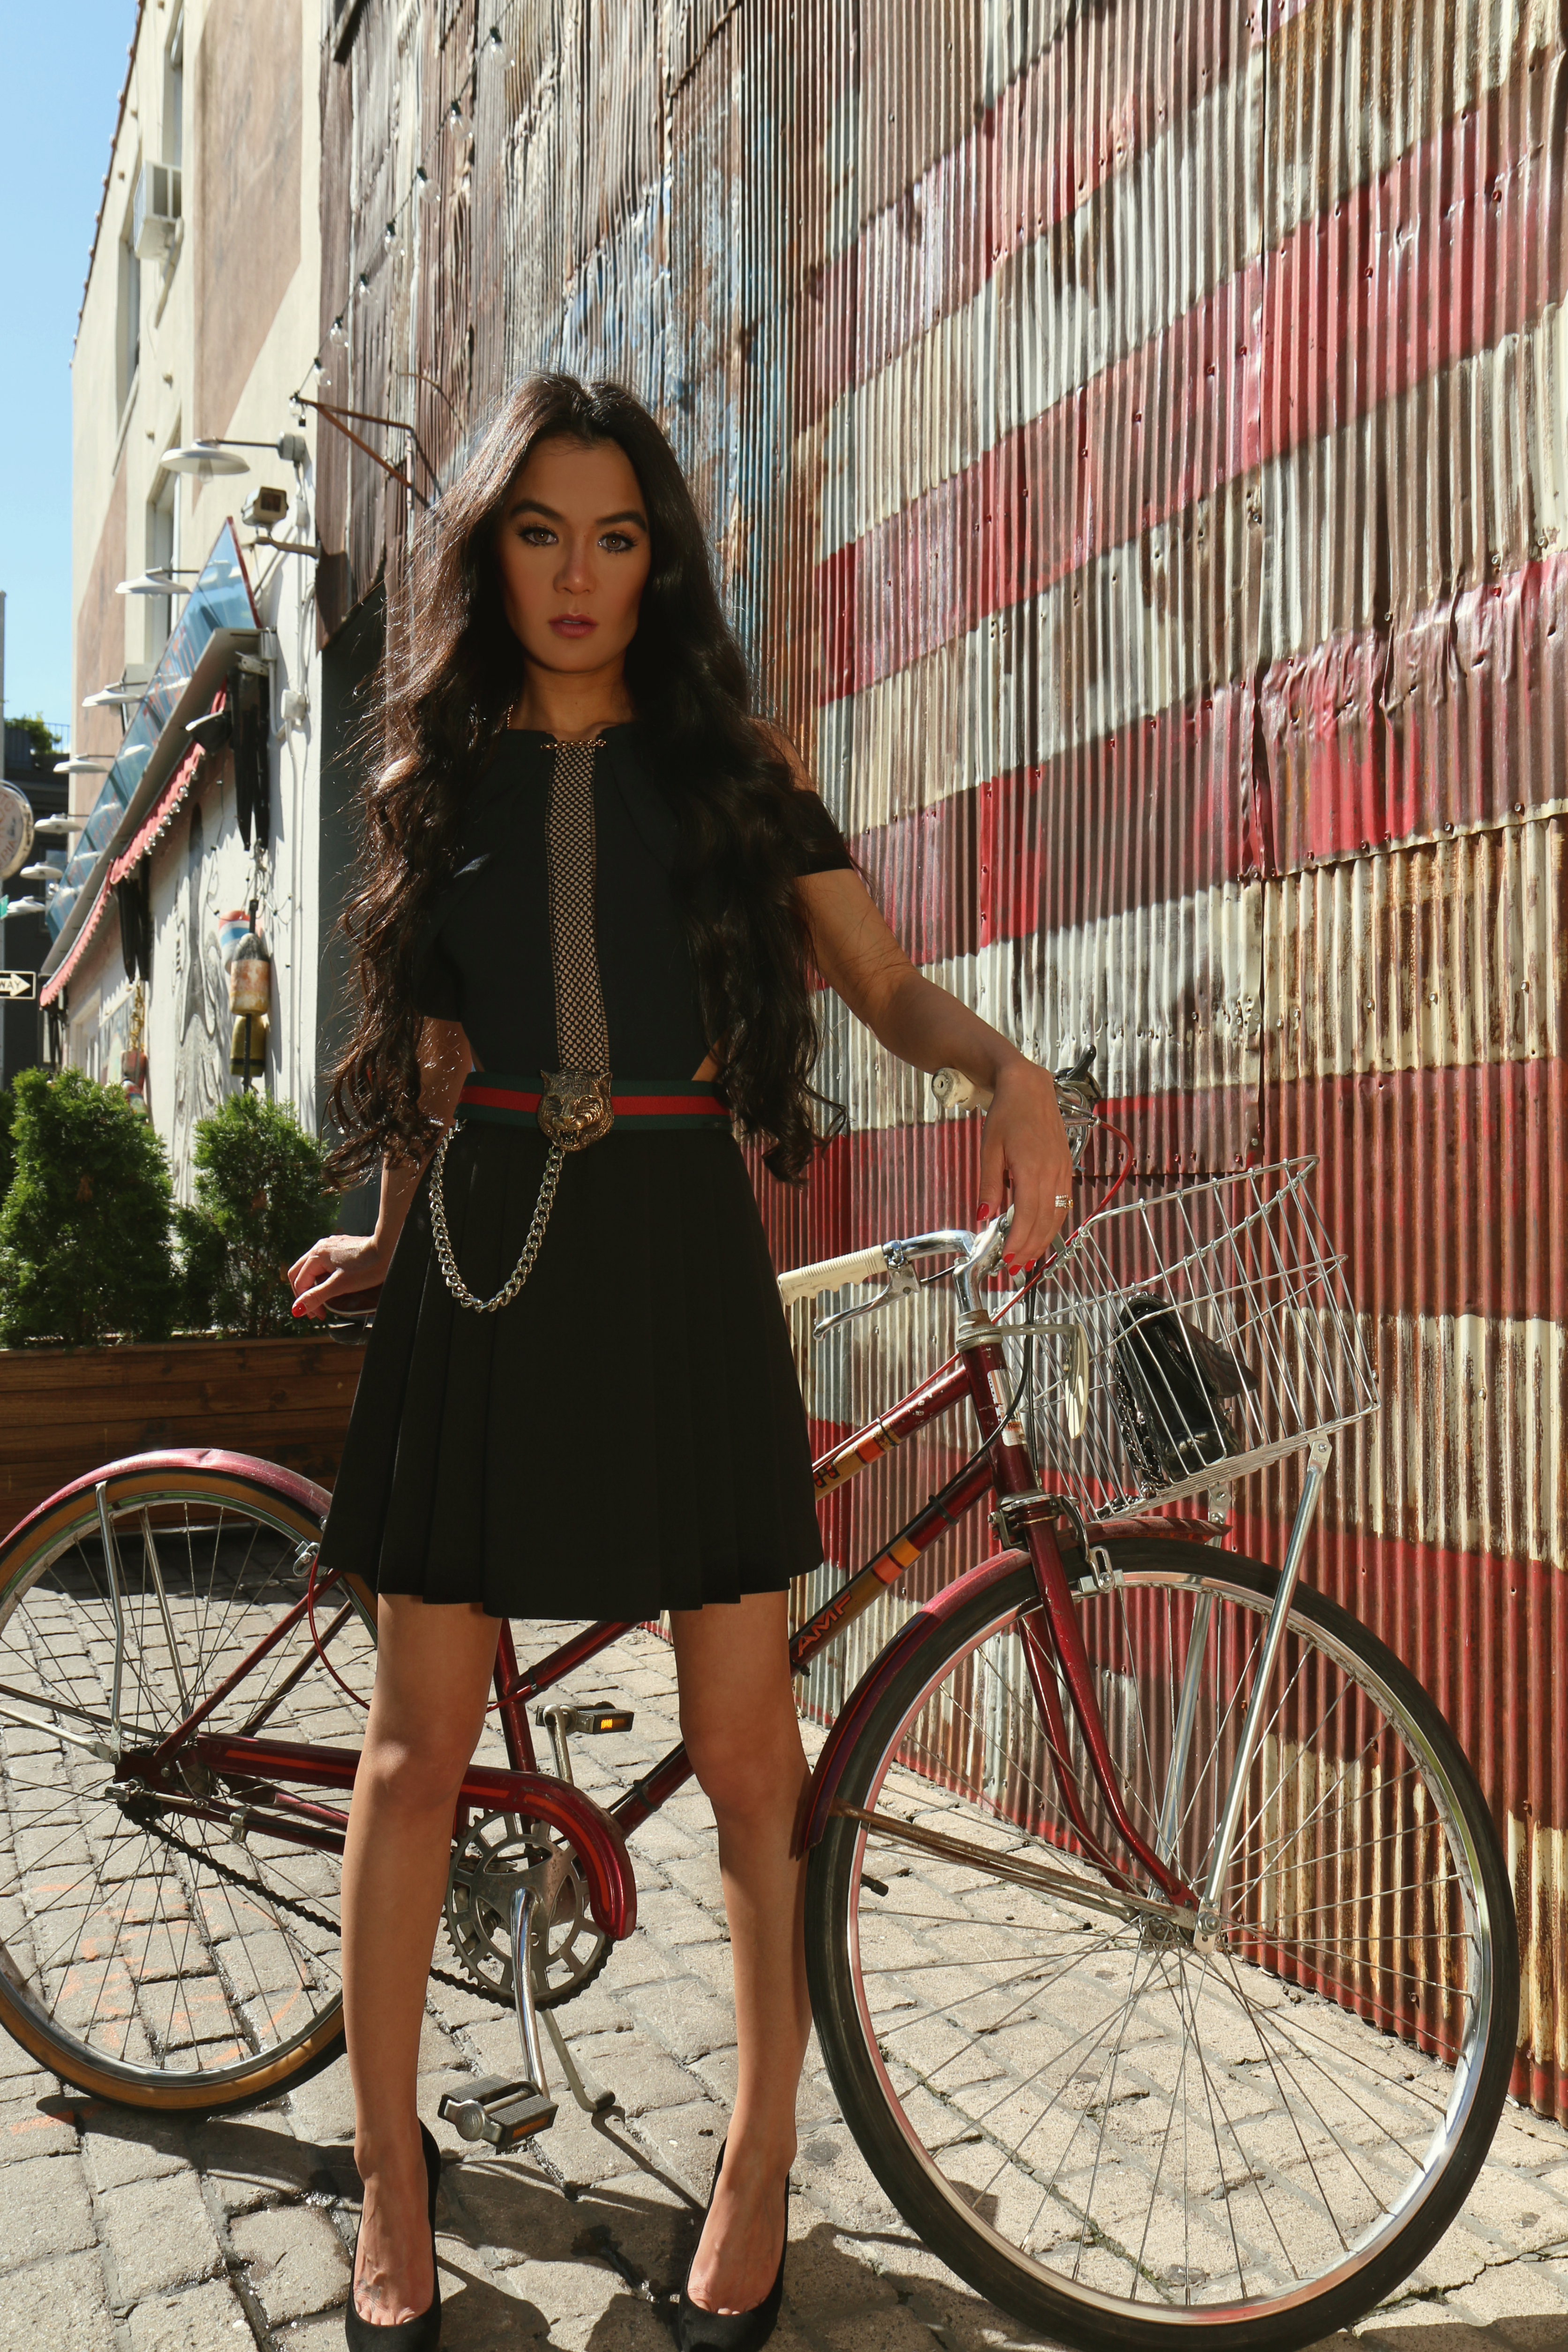 NYC Style Blogger Annamaria Stewart wearing Self-Portrait Chained-Up mesh-paneled crepe mini dress, Gucci feline buckle web belt, and Stuart Weitzman black suede Heist pumps, pictured at Shelter Pizza in Williamsburg Brooklyn, with a vintage 1970's bike - The Shopping Patch